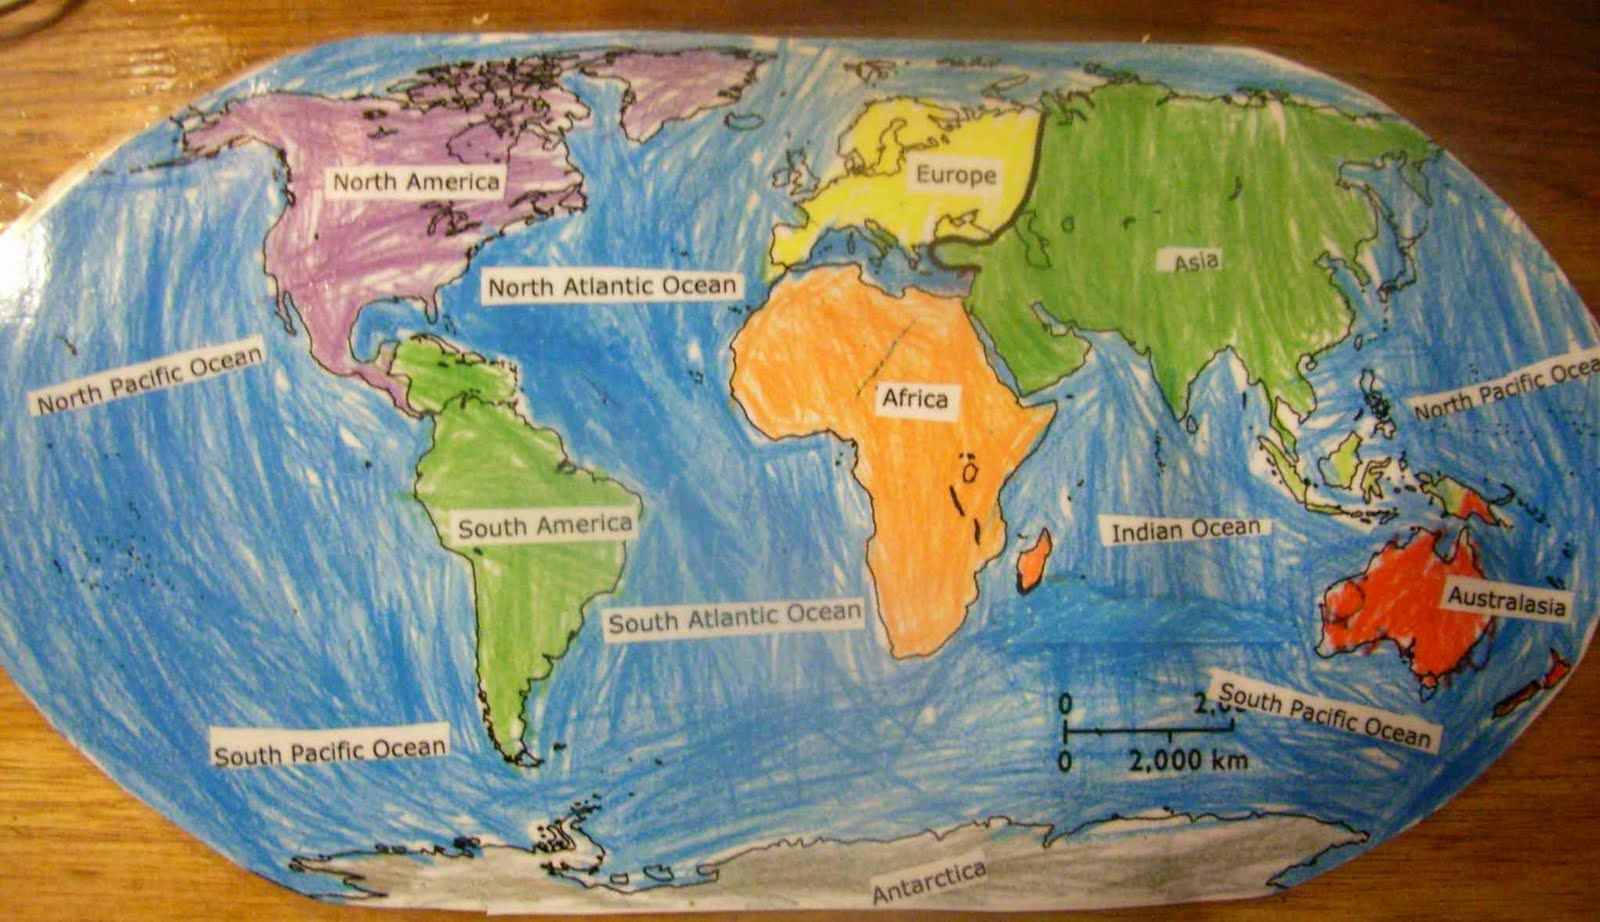 World map continents and oceans jaspers world map showing the world map continents and oceans jaspers world map showing the continents and major oceans gumiabroncs